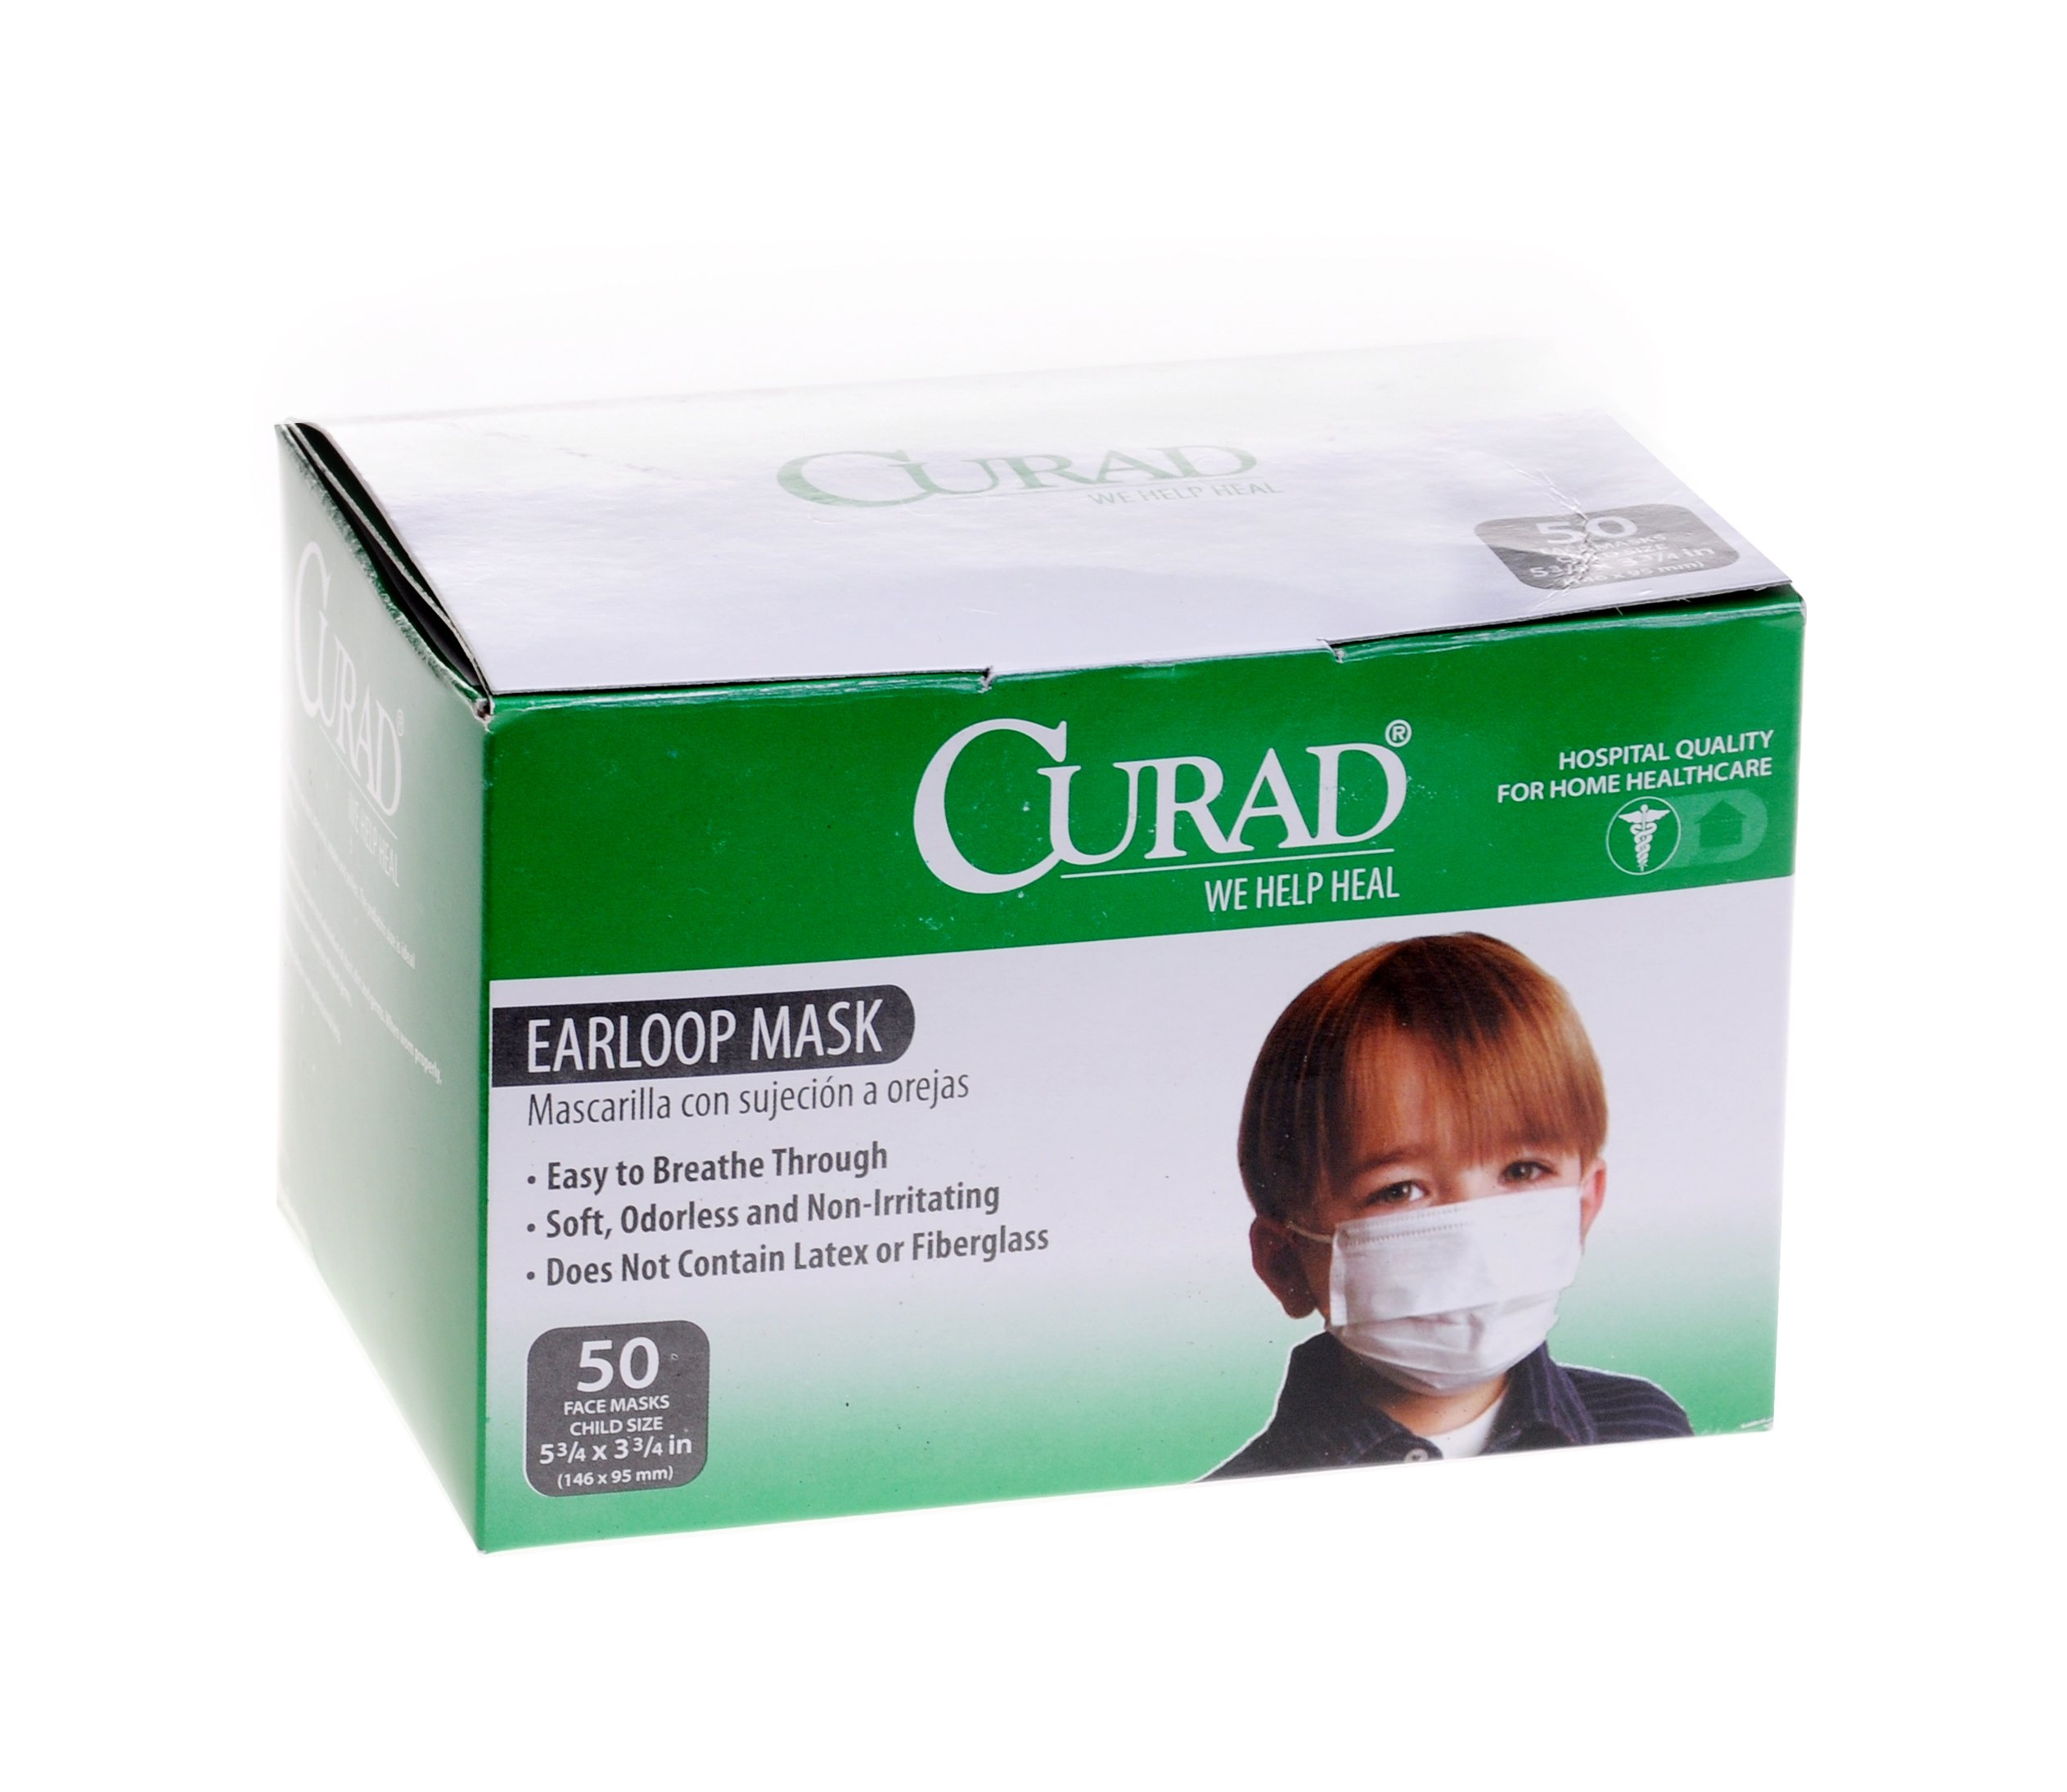 Curad CUR380 Face Mask with Ear Loops, 50 count, Child, White (Pack of 600) by Curad